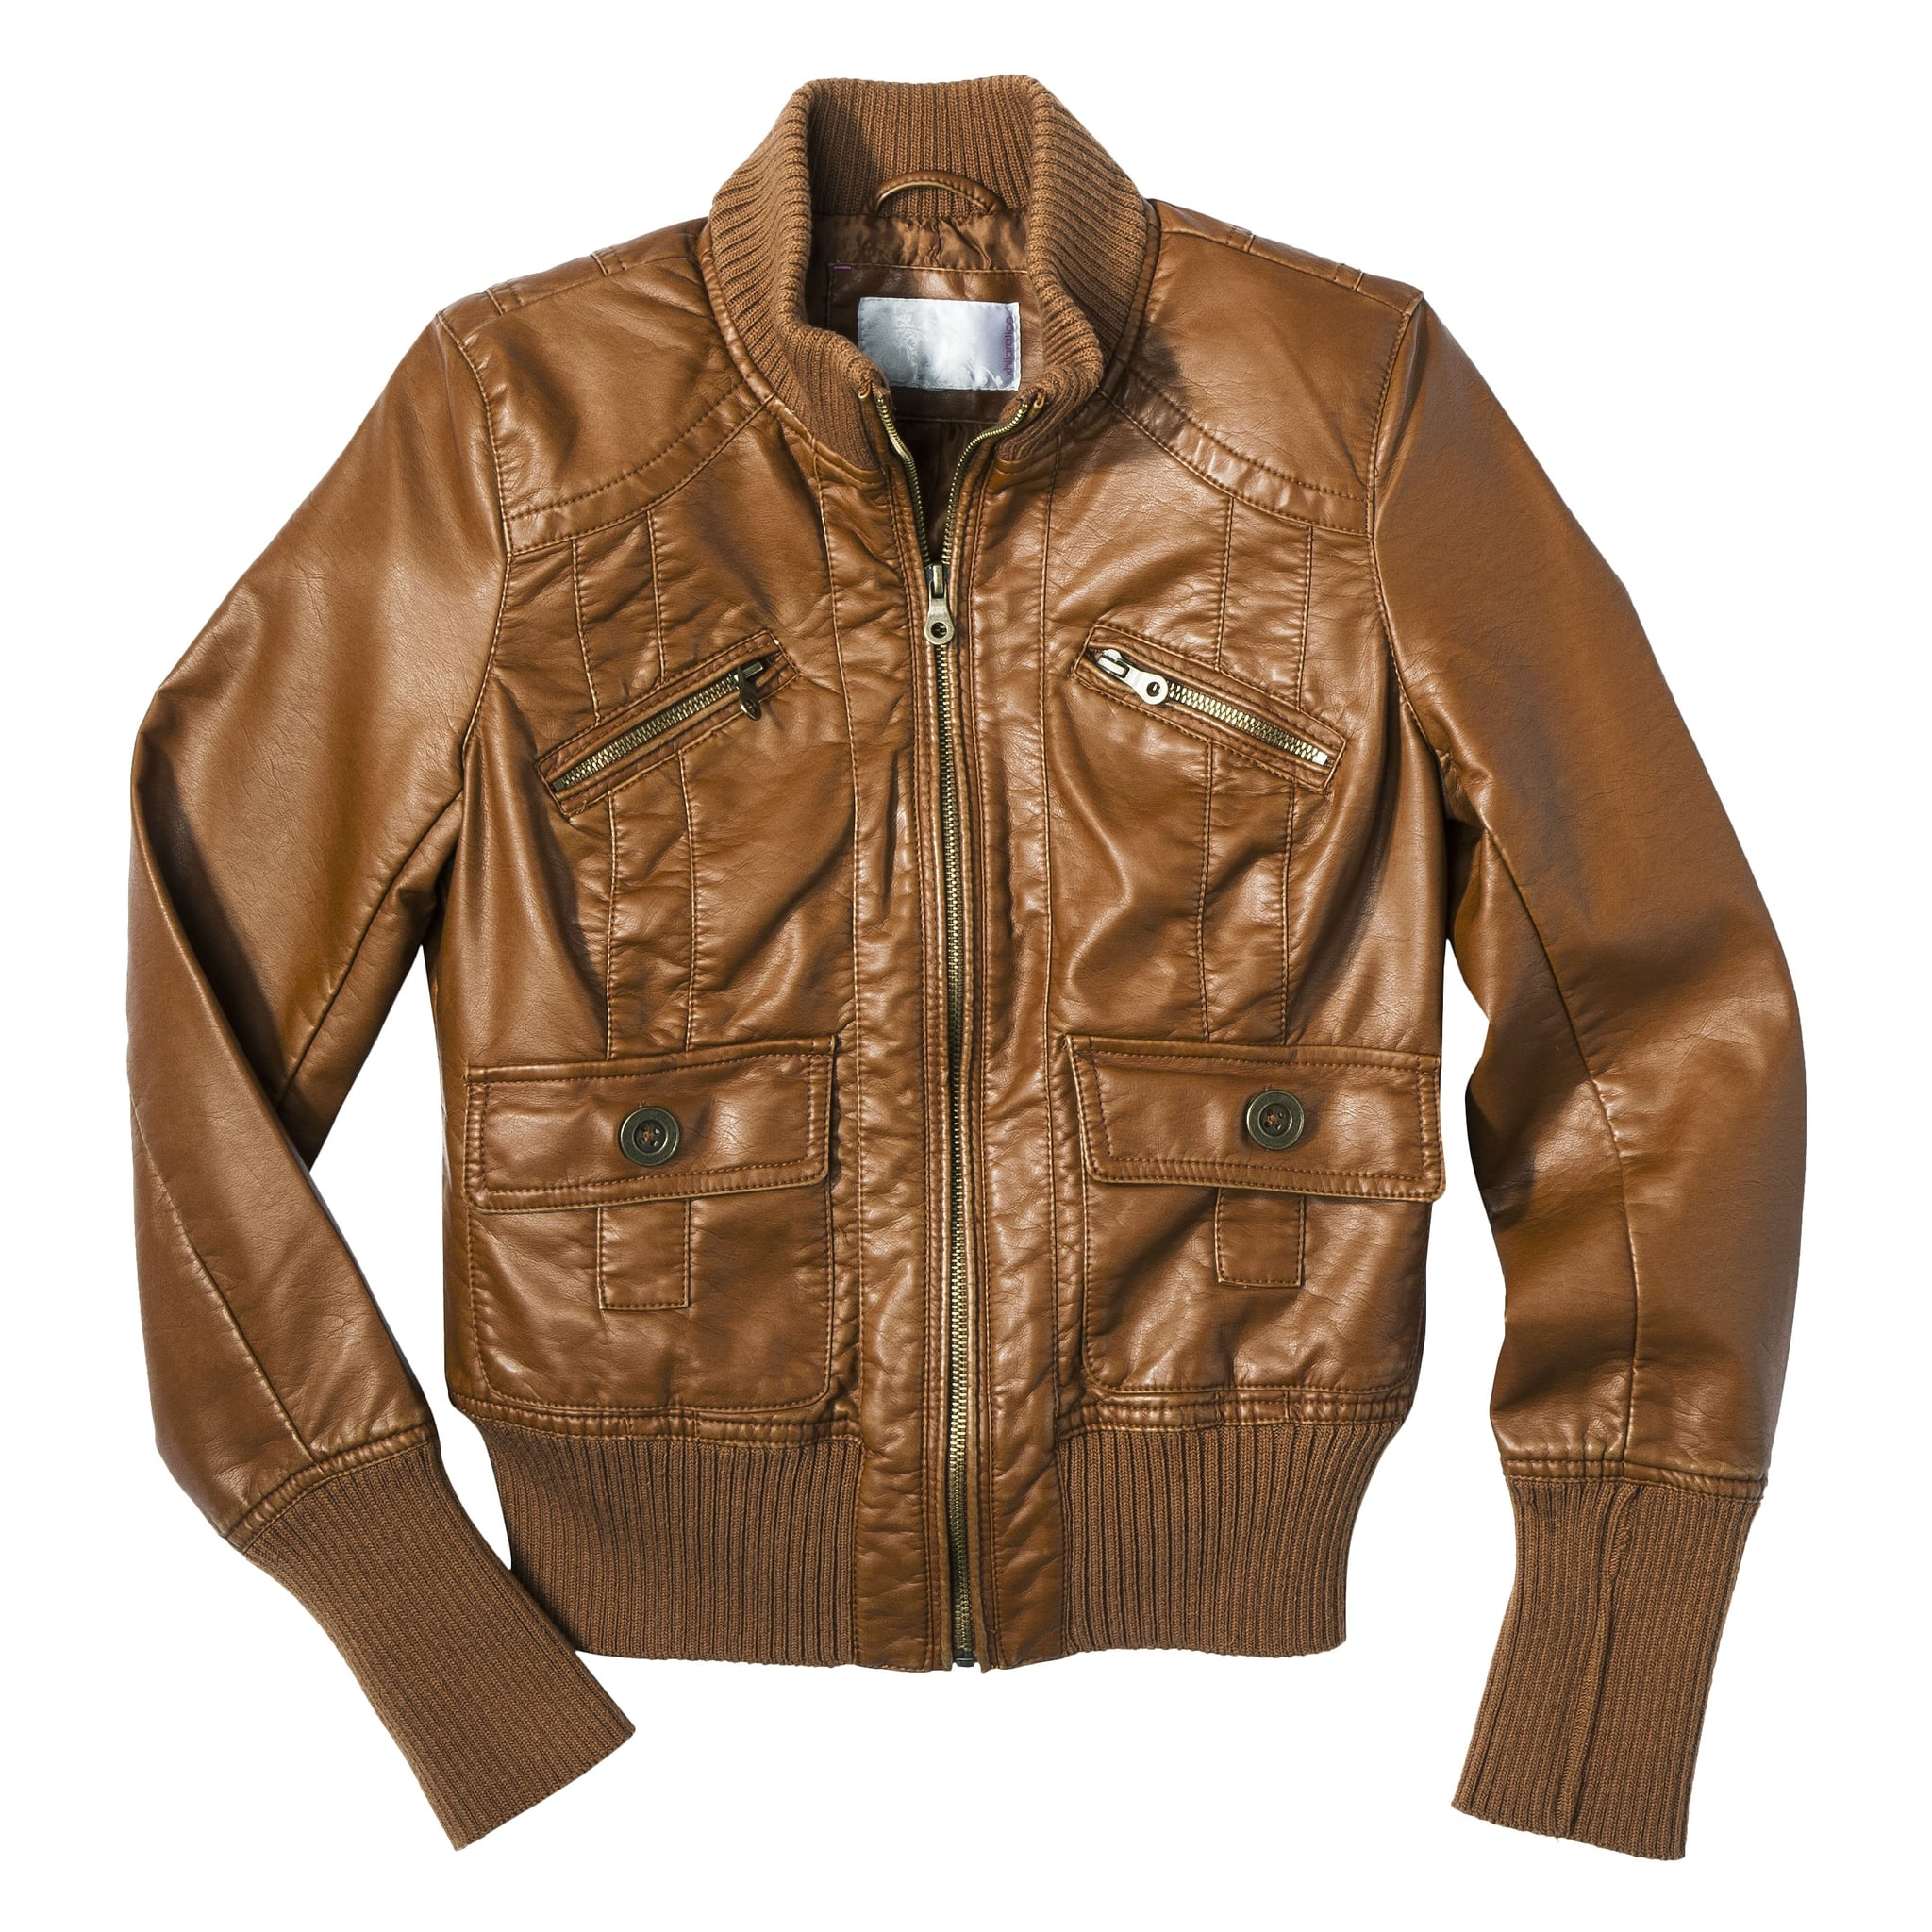 Head into Fall with a classic leather bomber jacket ($40) ready to be layered over everything.